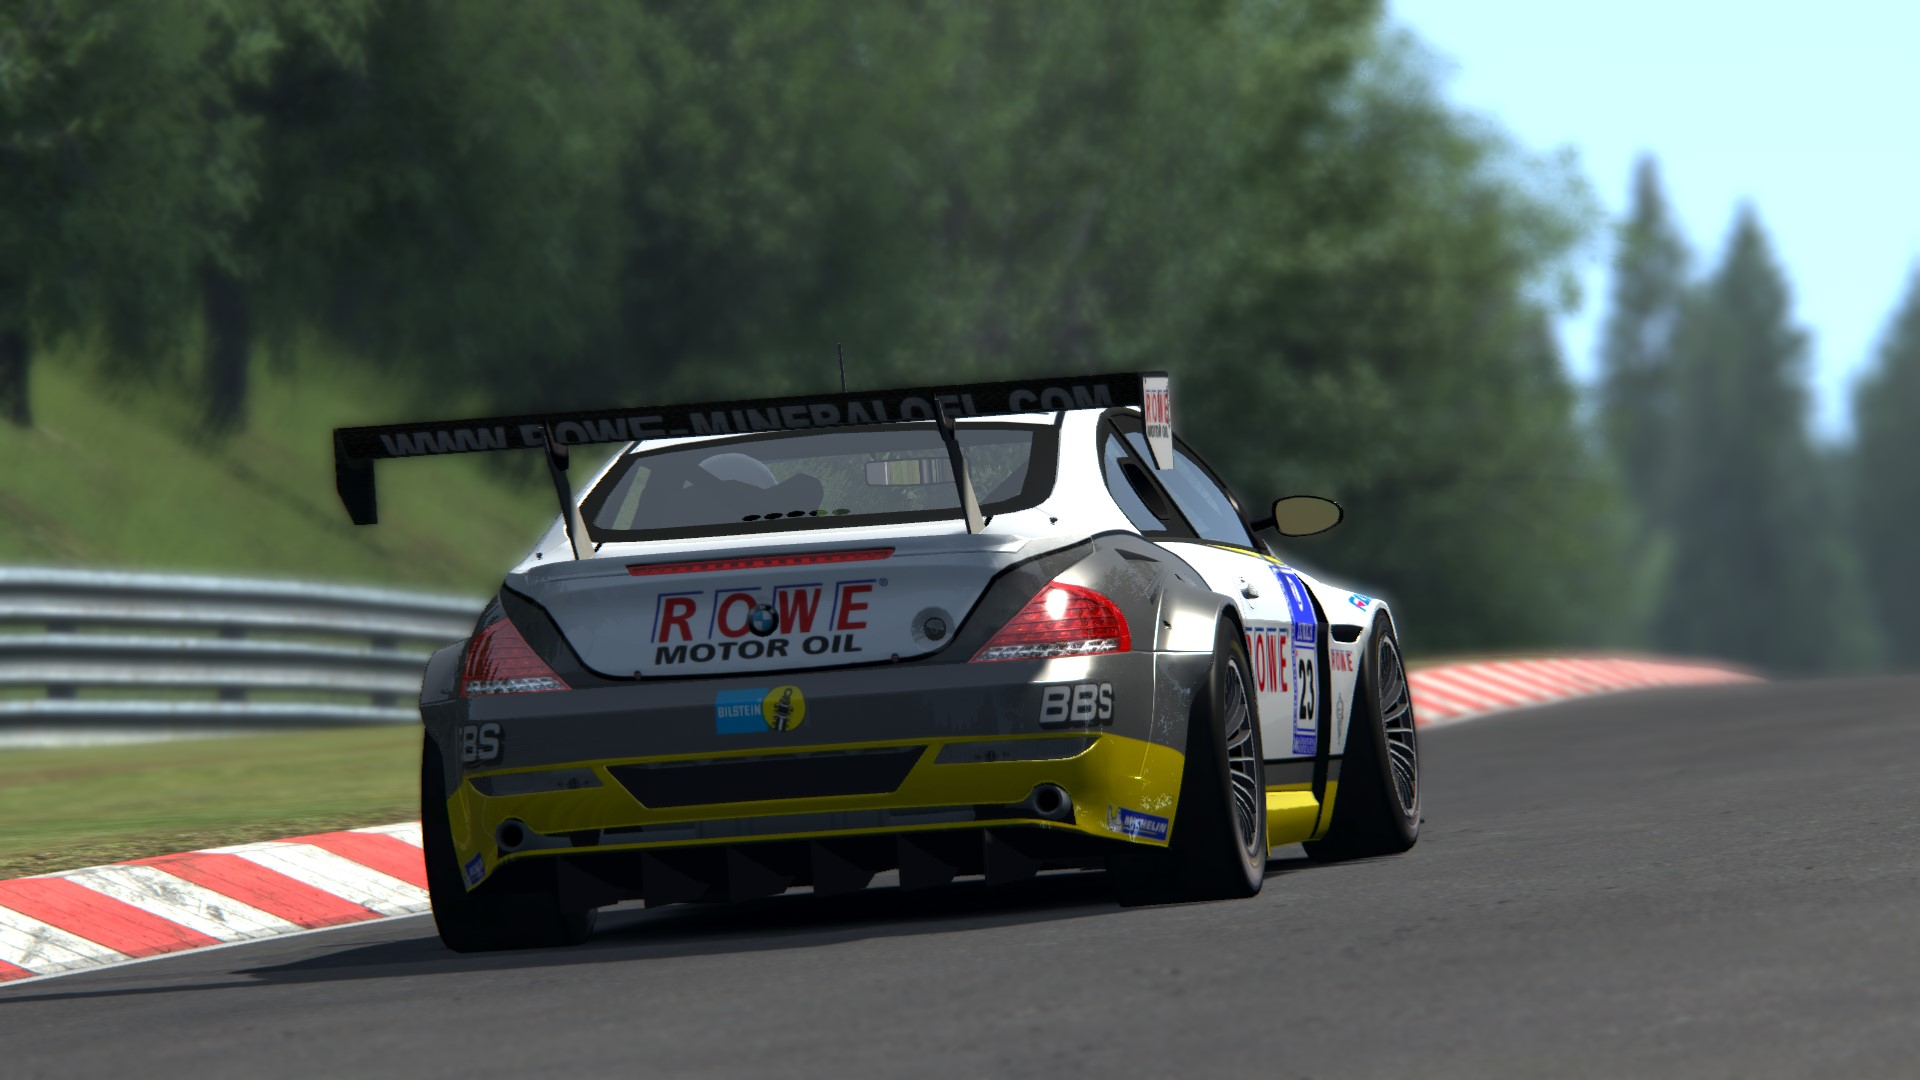 Screenshot_alpinab6_gt3_ks_nordschleife_17-12-115-12-1-59.jpg